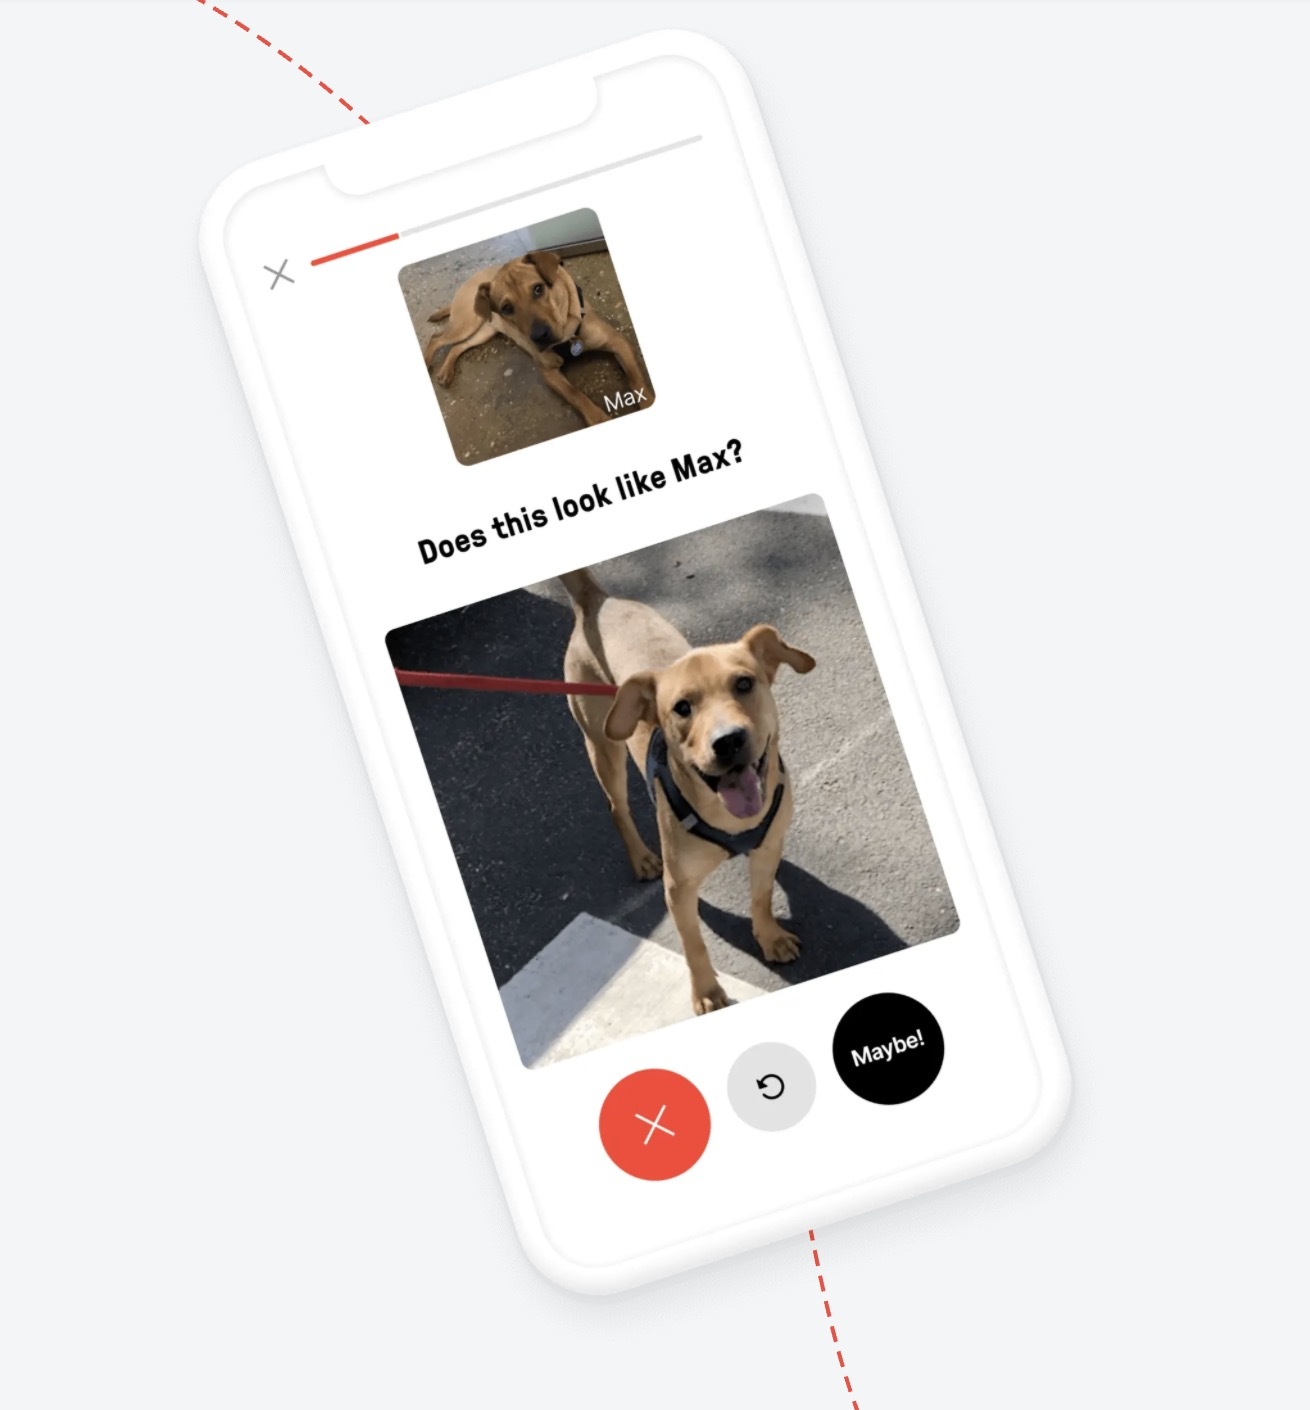 Zocdoc founder returns with Shadow, an app that finds lost dogs